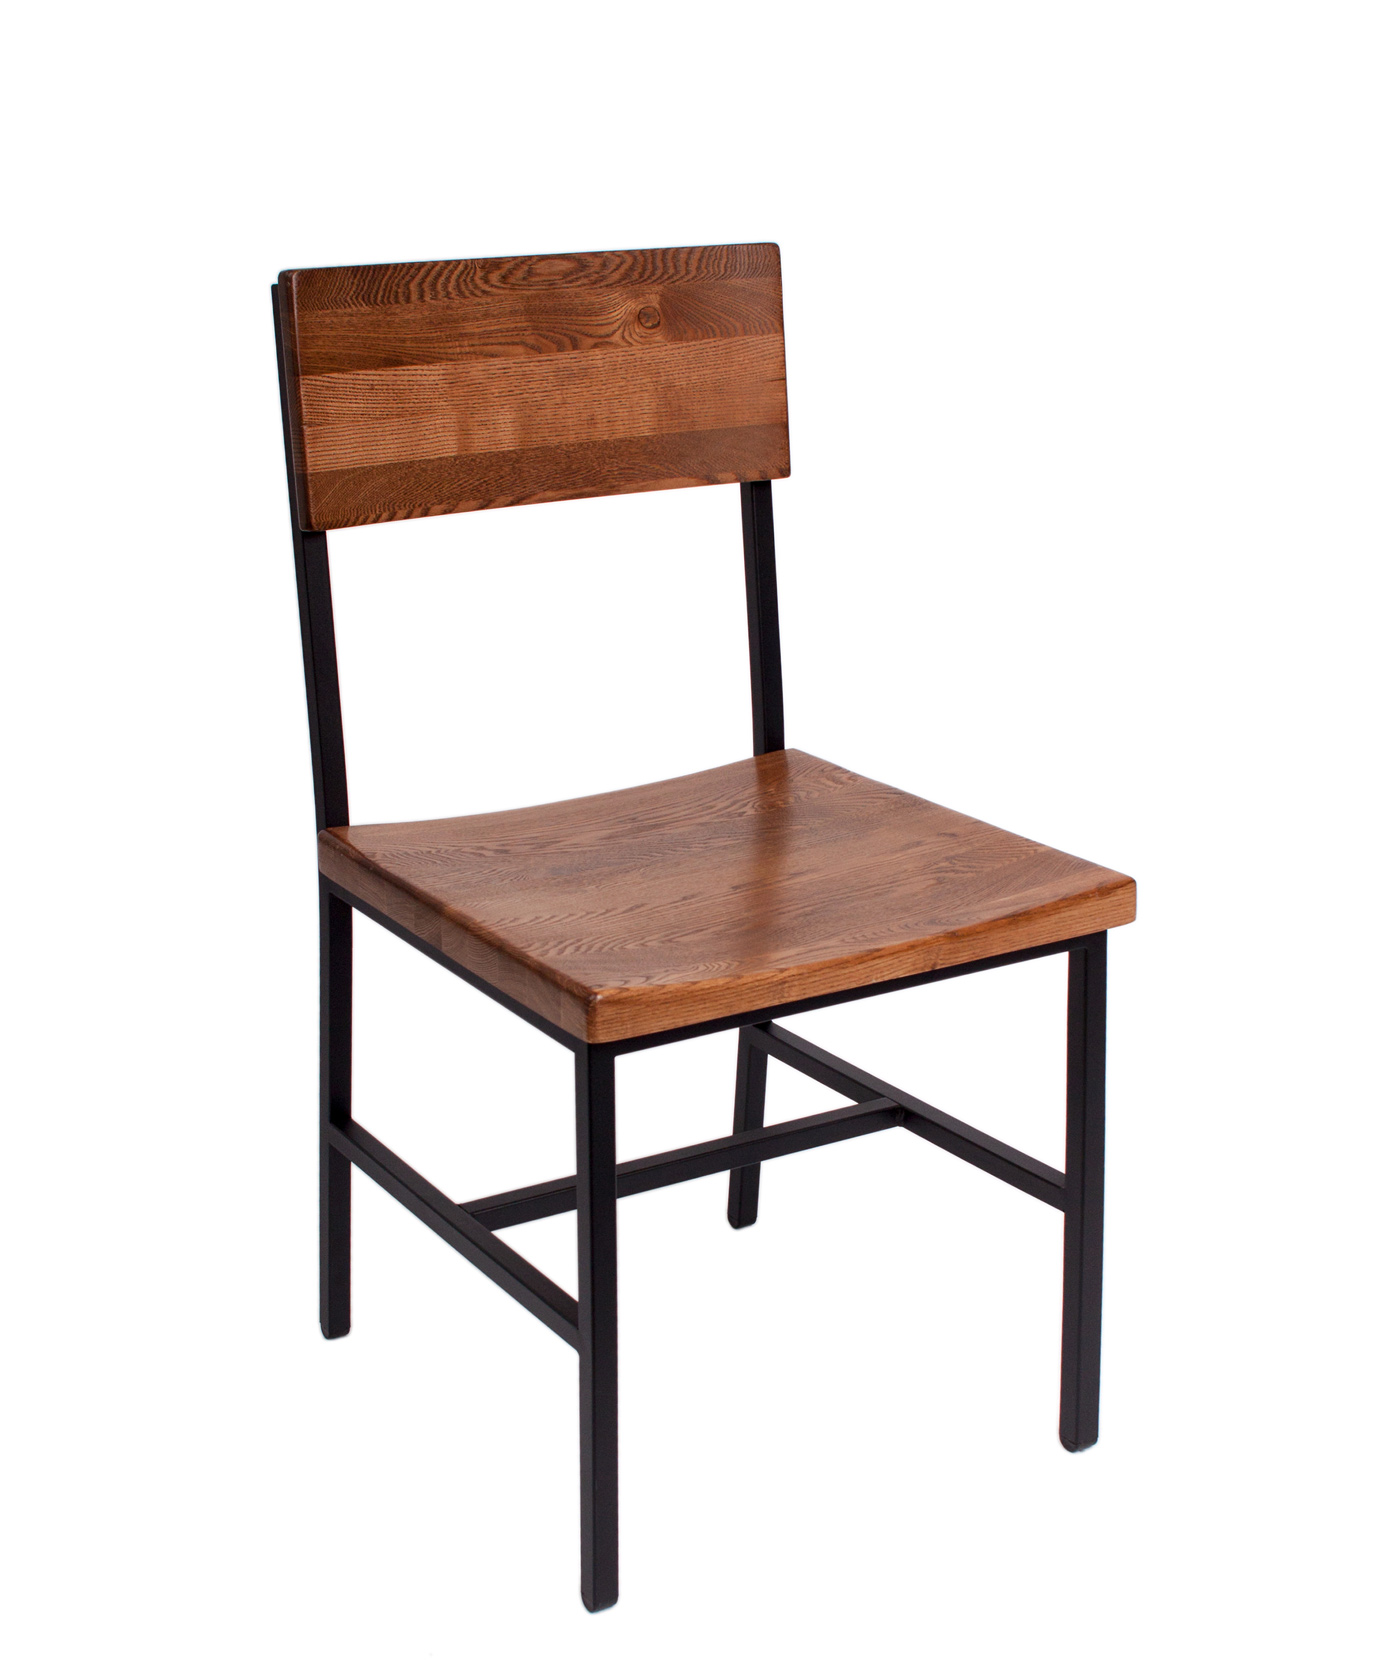 Memphis Sand Black Steel Side Chair with Autumn Ash Wooden Back and Seat